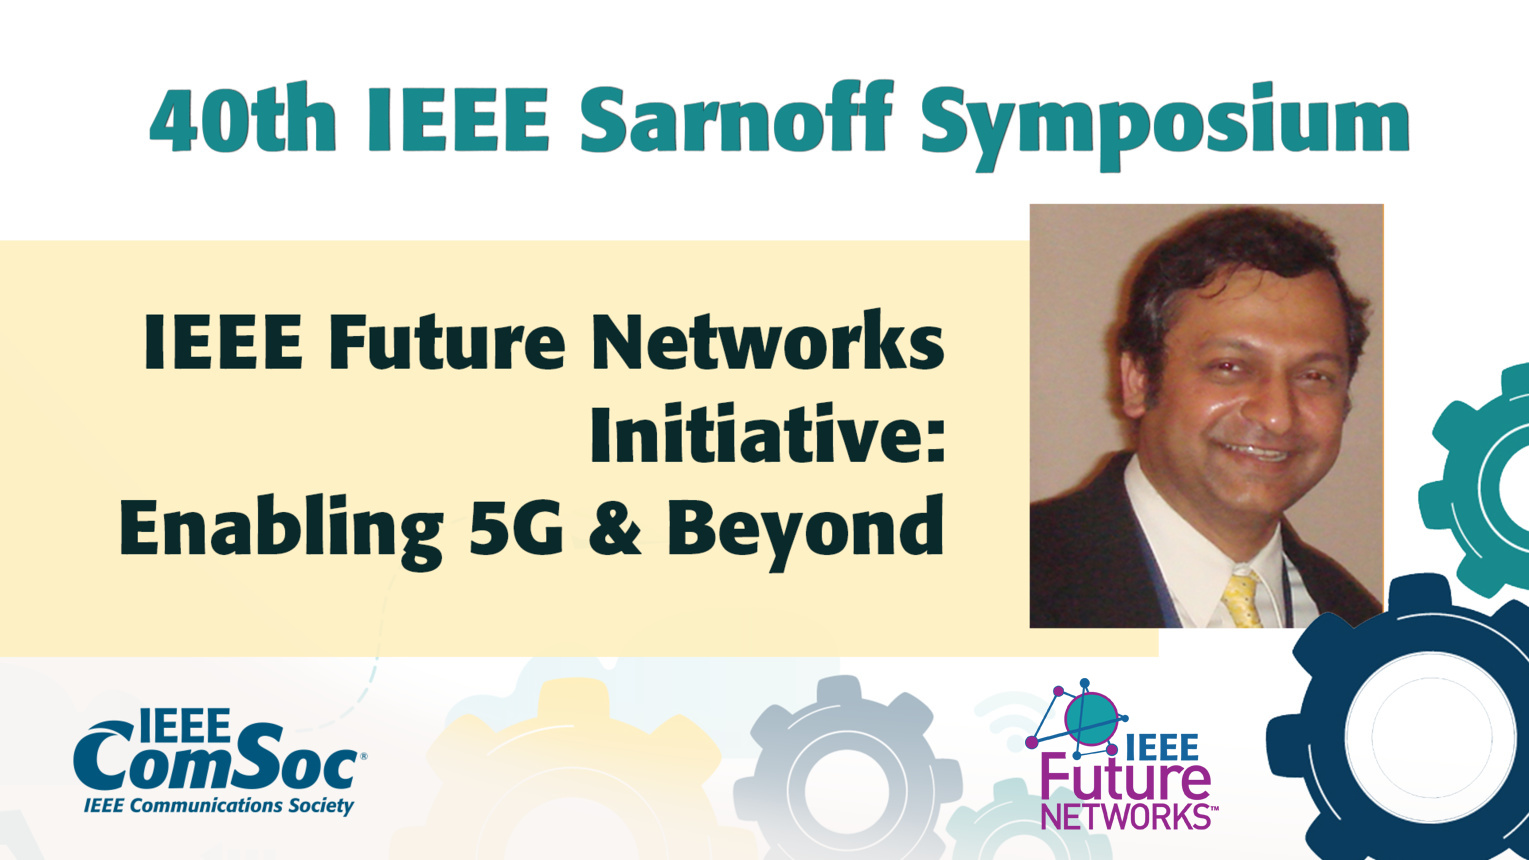 IEEE Future Networks Initiative: Enabling 5G & Beyond - Ashutosh Dutta - IEEE Sarnoff Symposium, 2019